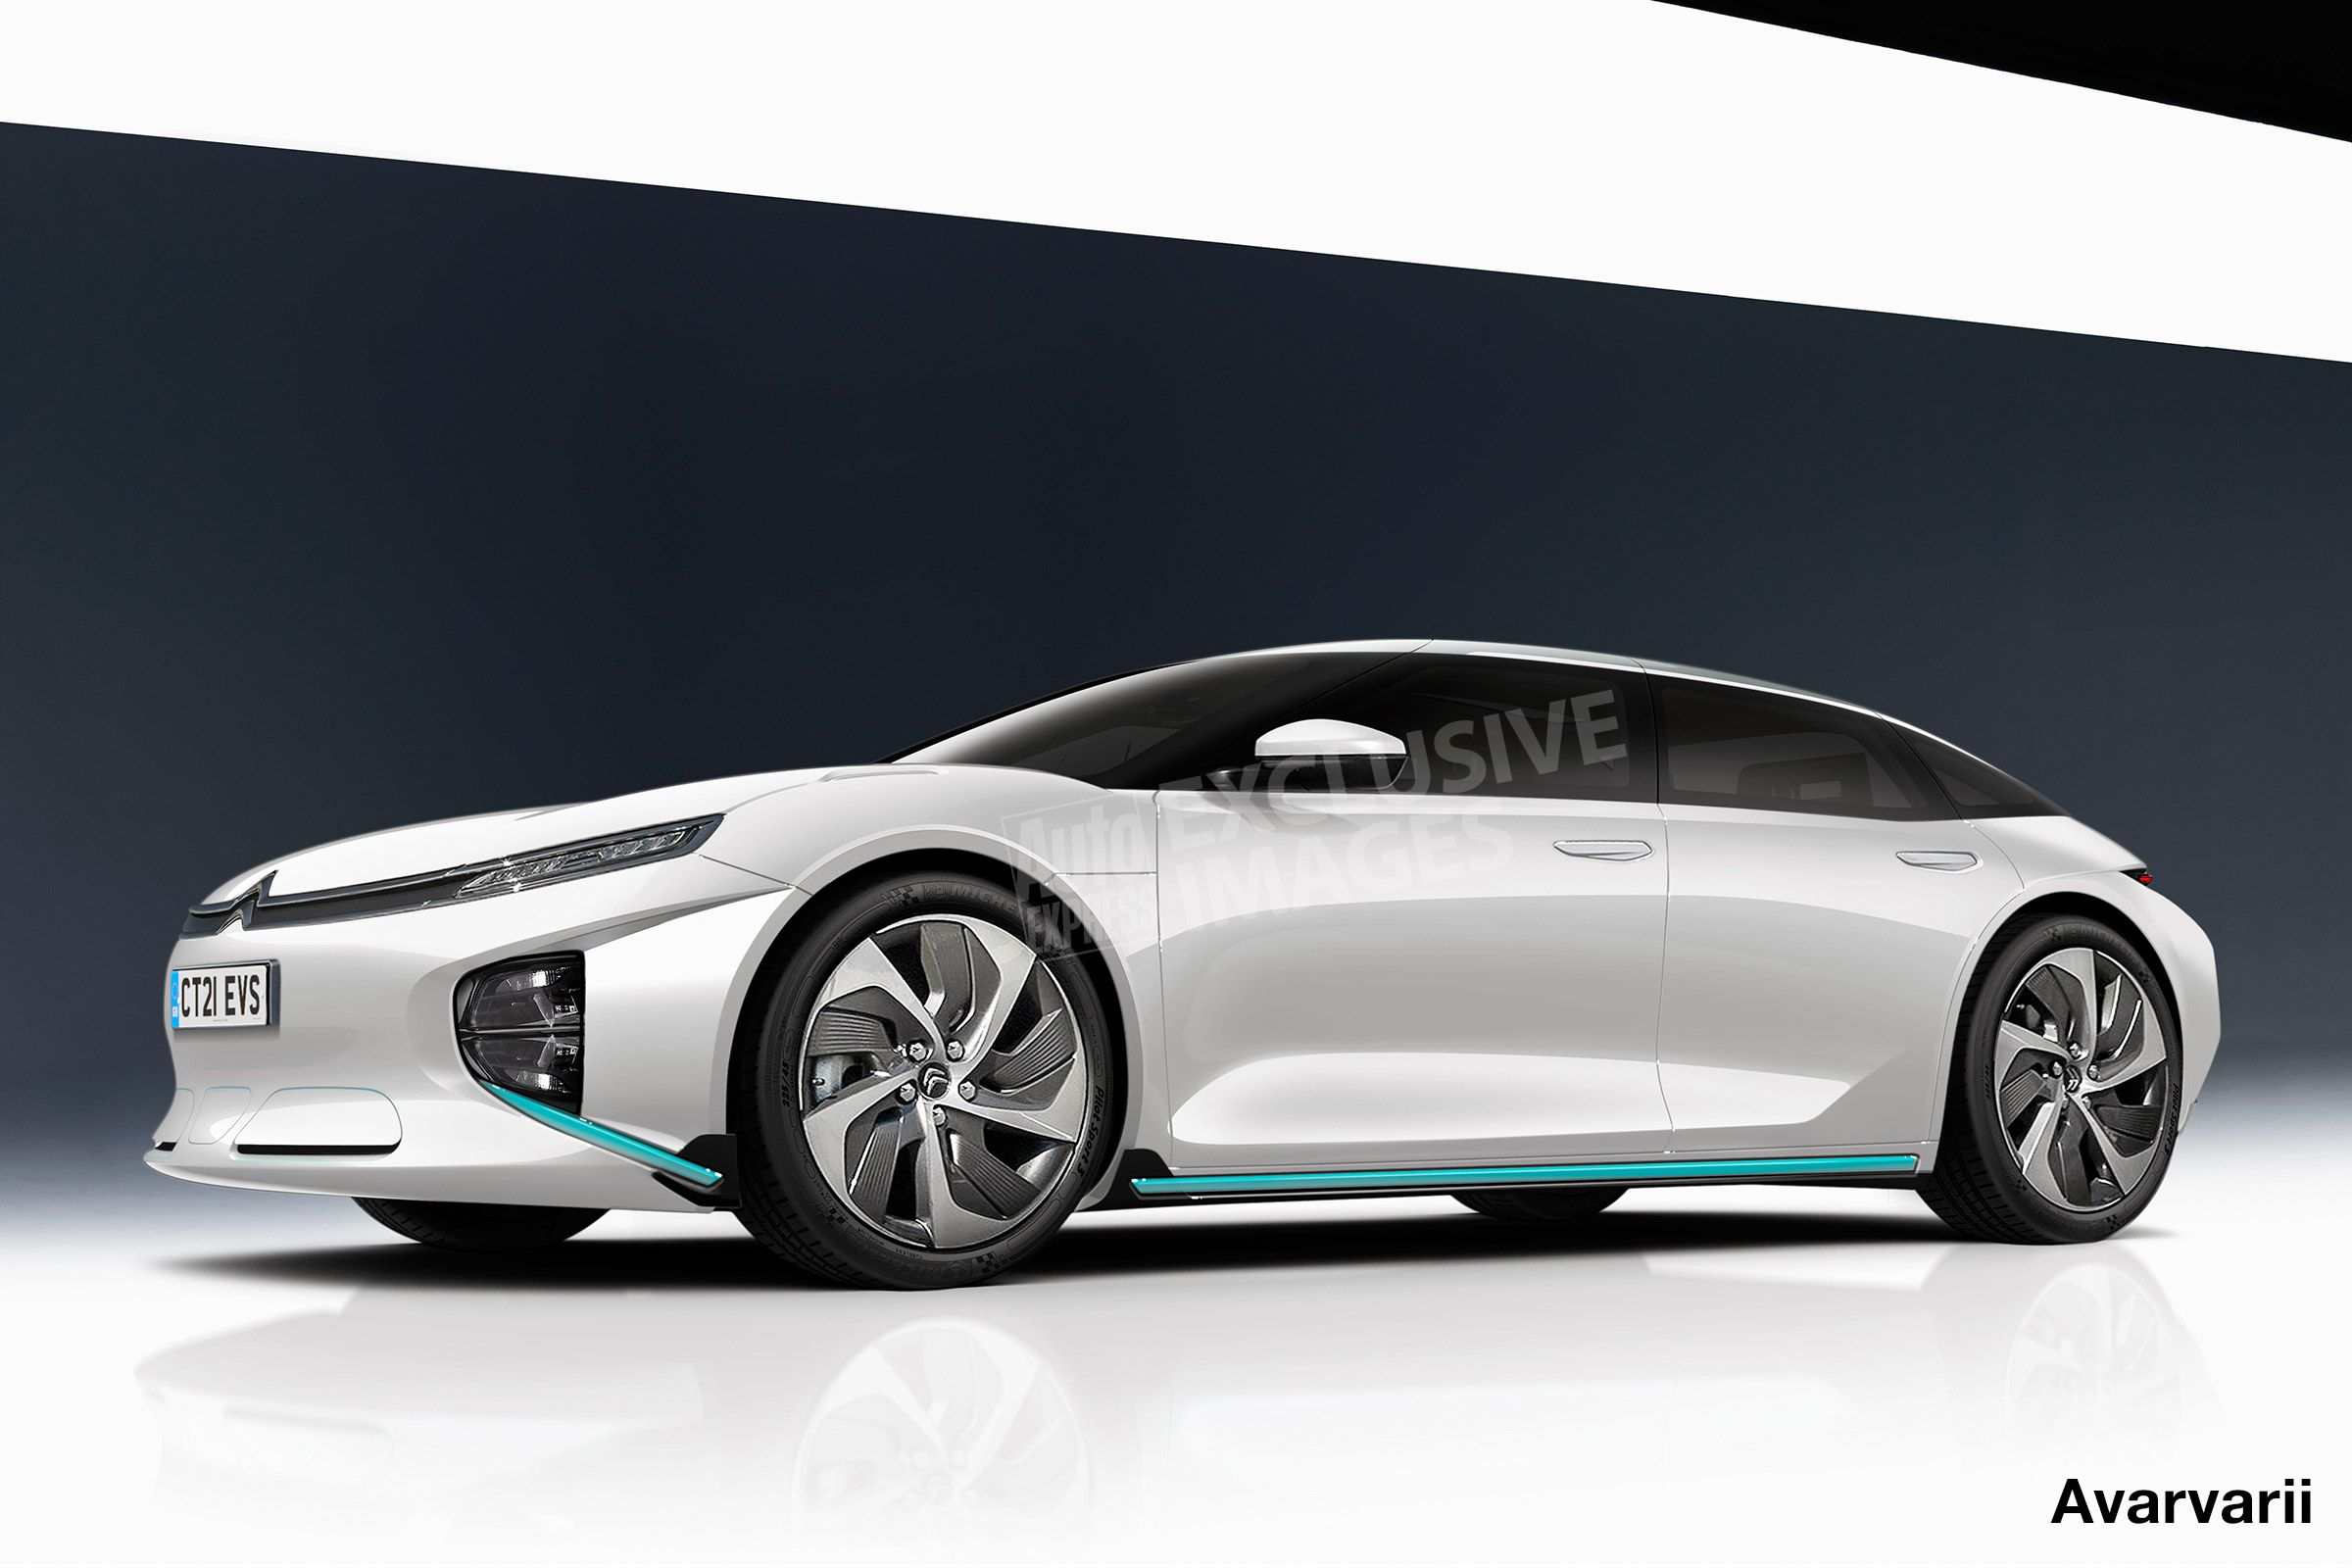 New Citroen saloon draws inspiration from the Cxperience